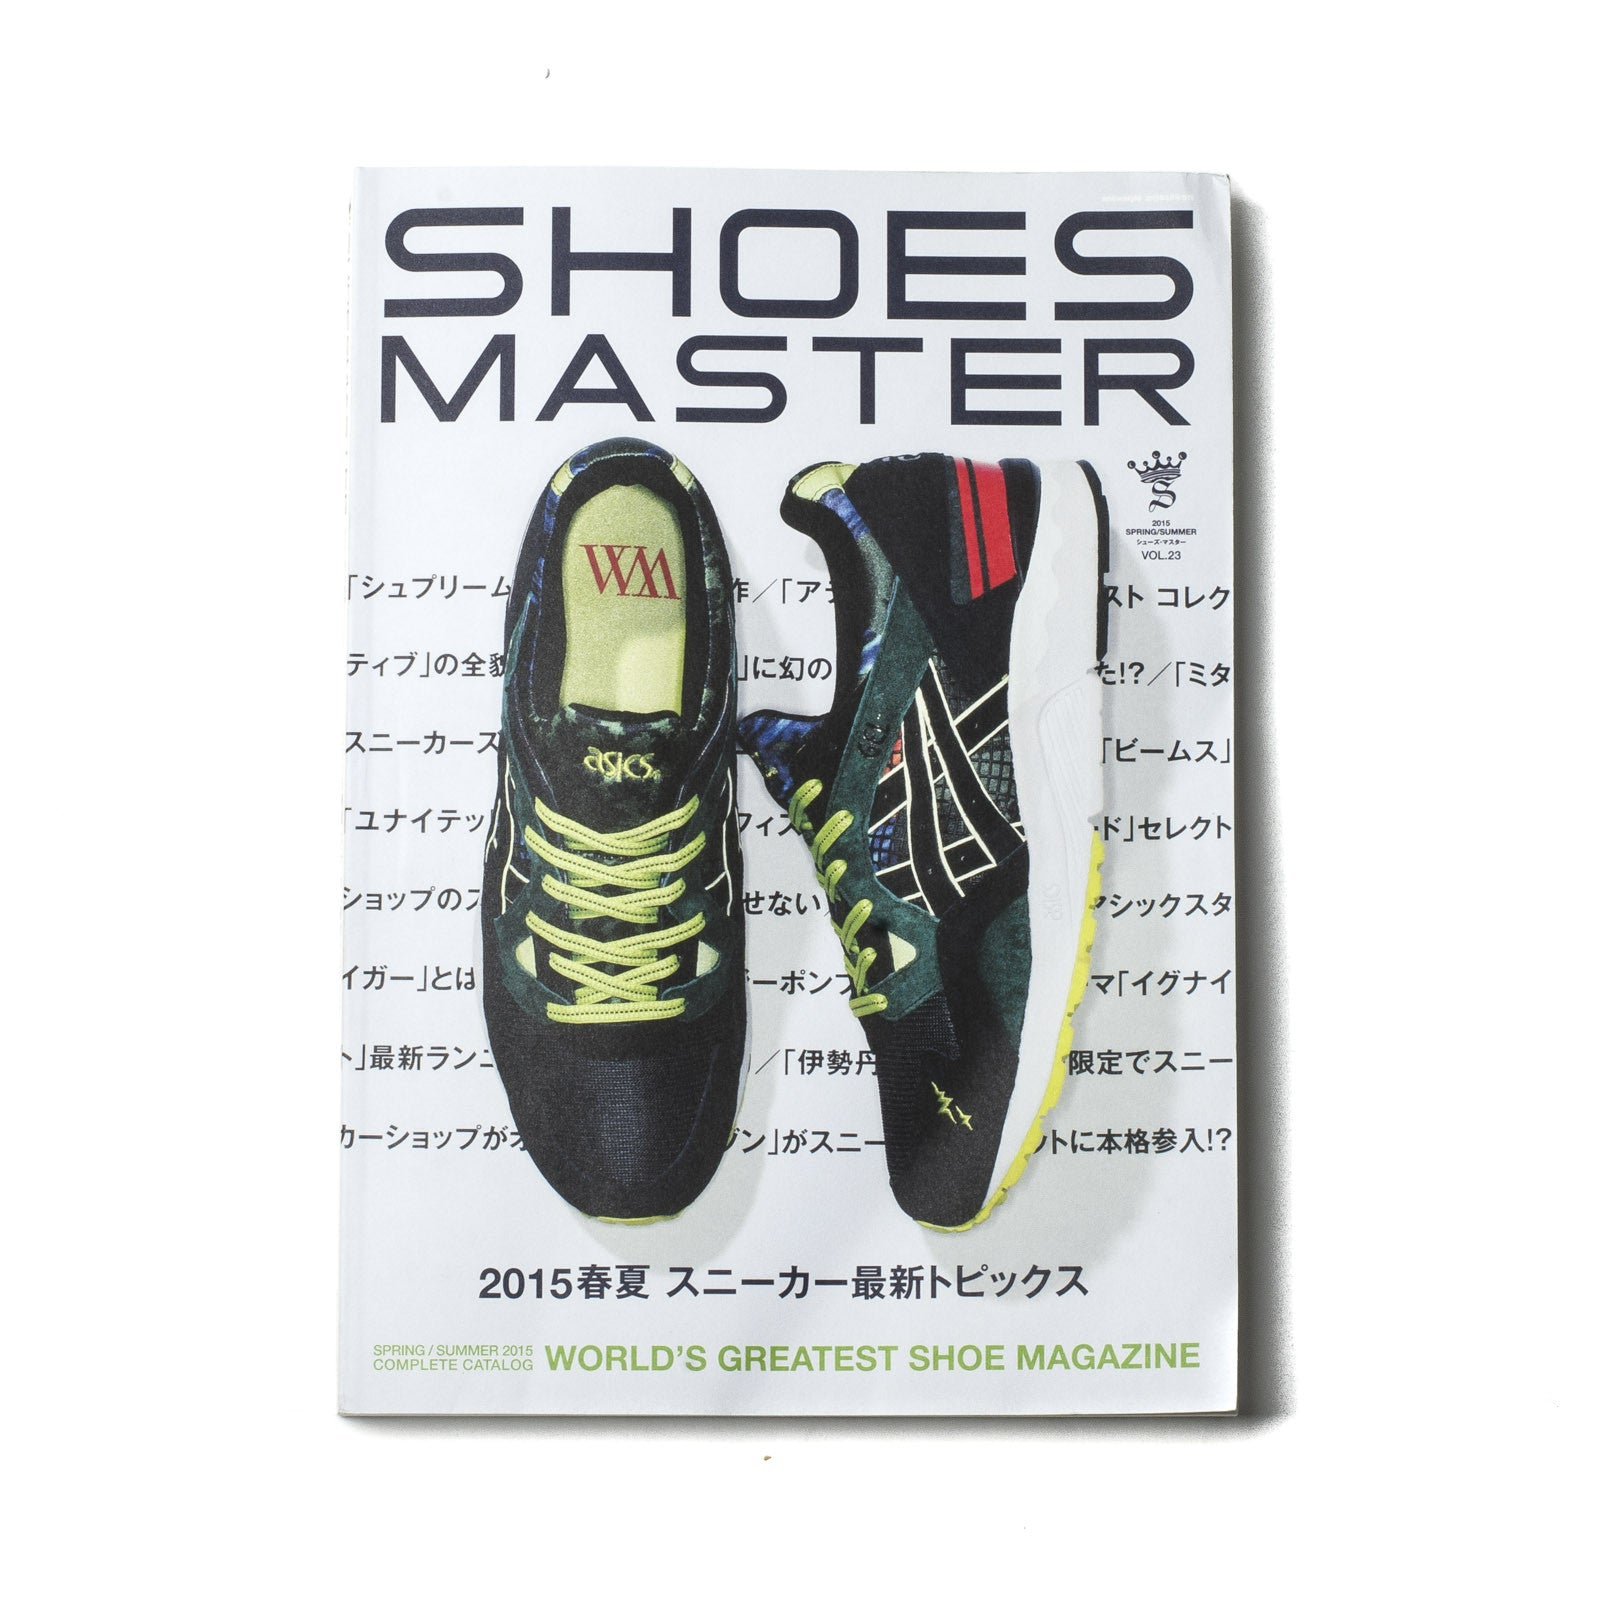 SHOES MASTER Vol. 23